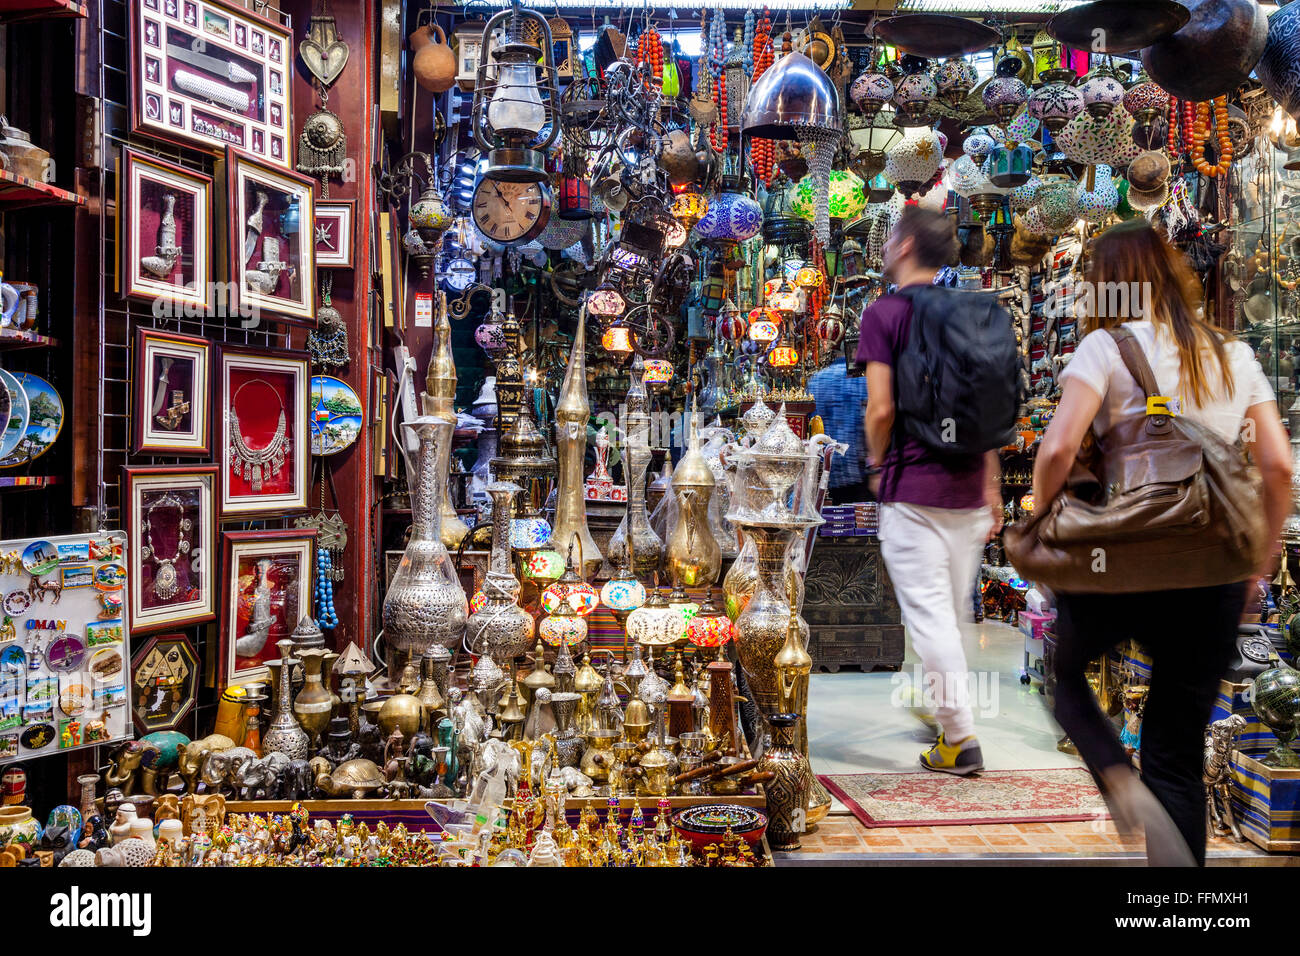 Tourists Shopping In The Muttrah Souk (Al Dhalam), Muttrah, Muscat, Sultanate Of Oman - Stock Image